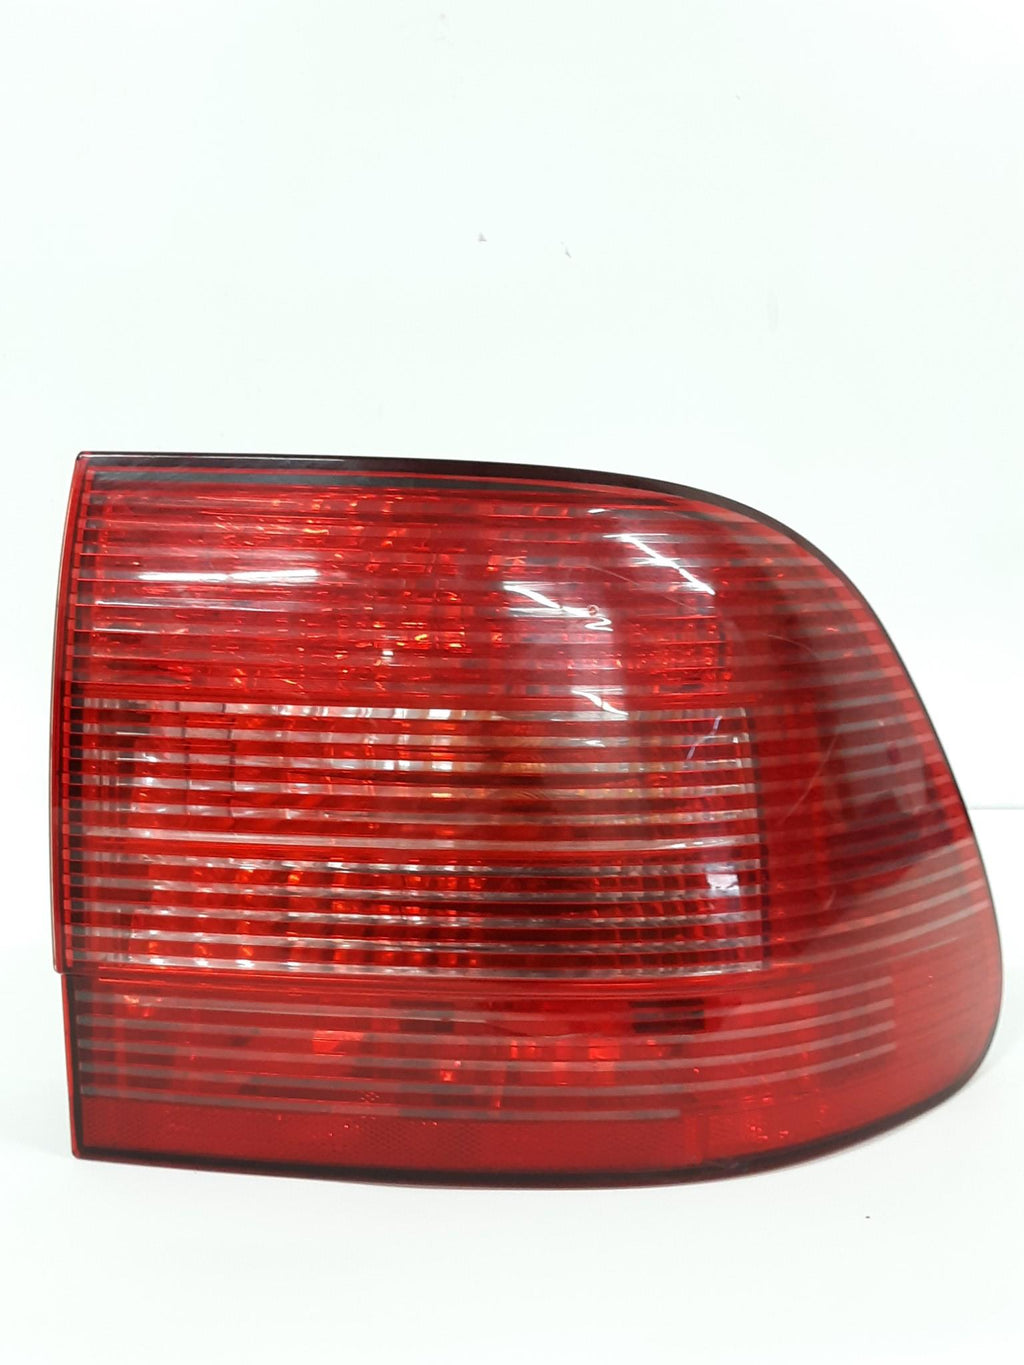 03-06 PORSCHE CAYENNE 955 REAR RIGHT PASSENGER SIDE TAIL LIGHT LAMP OEM - Click Receive Auto Parts